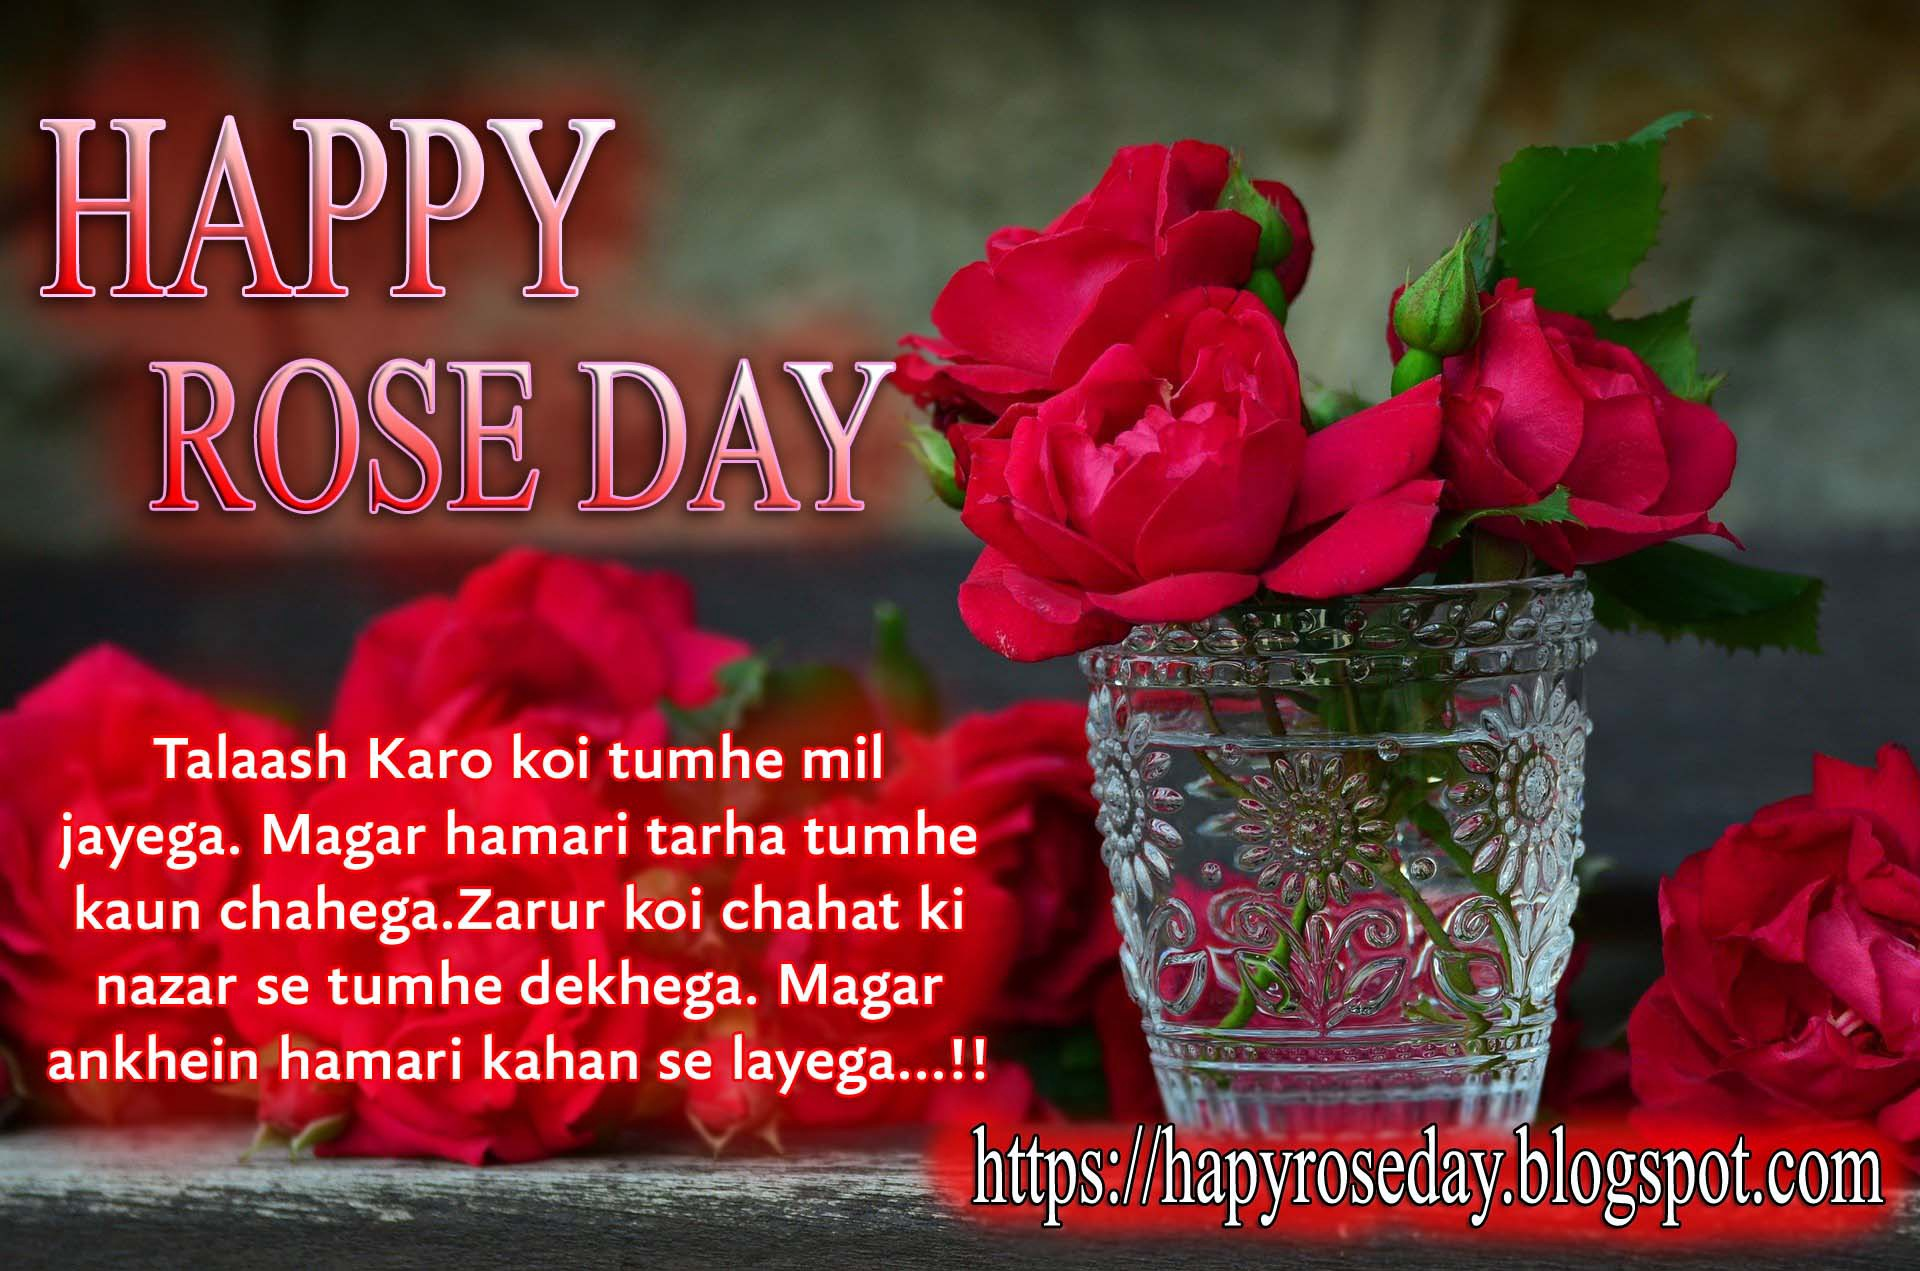 Happy Rose Day 2020 Whatsapp Status Rose Shayari Quotes Images